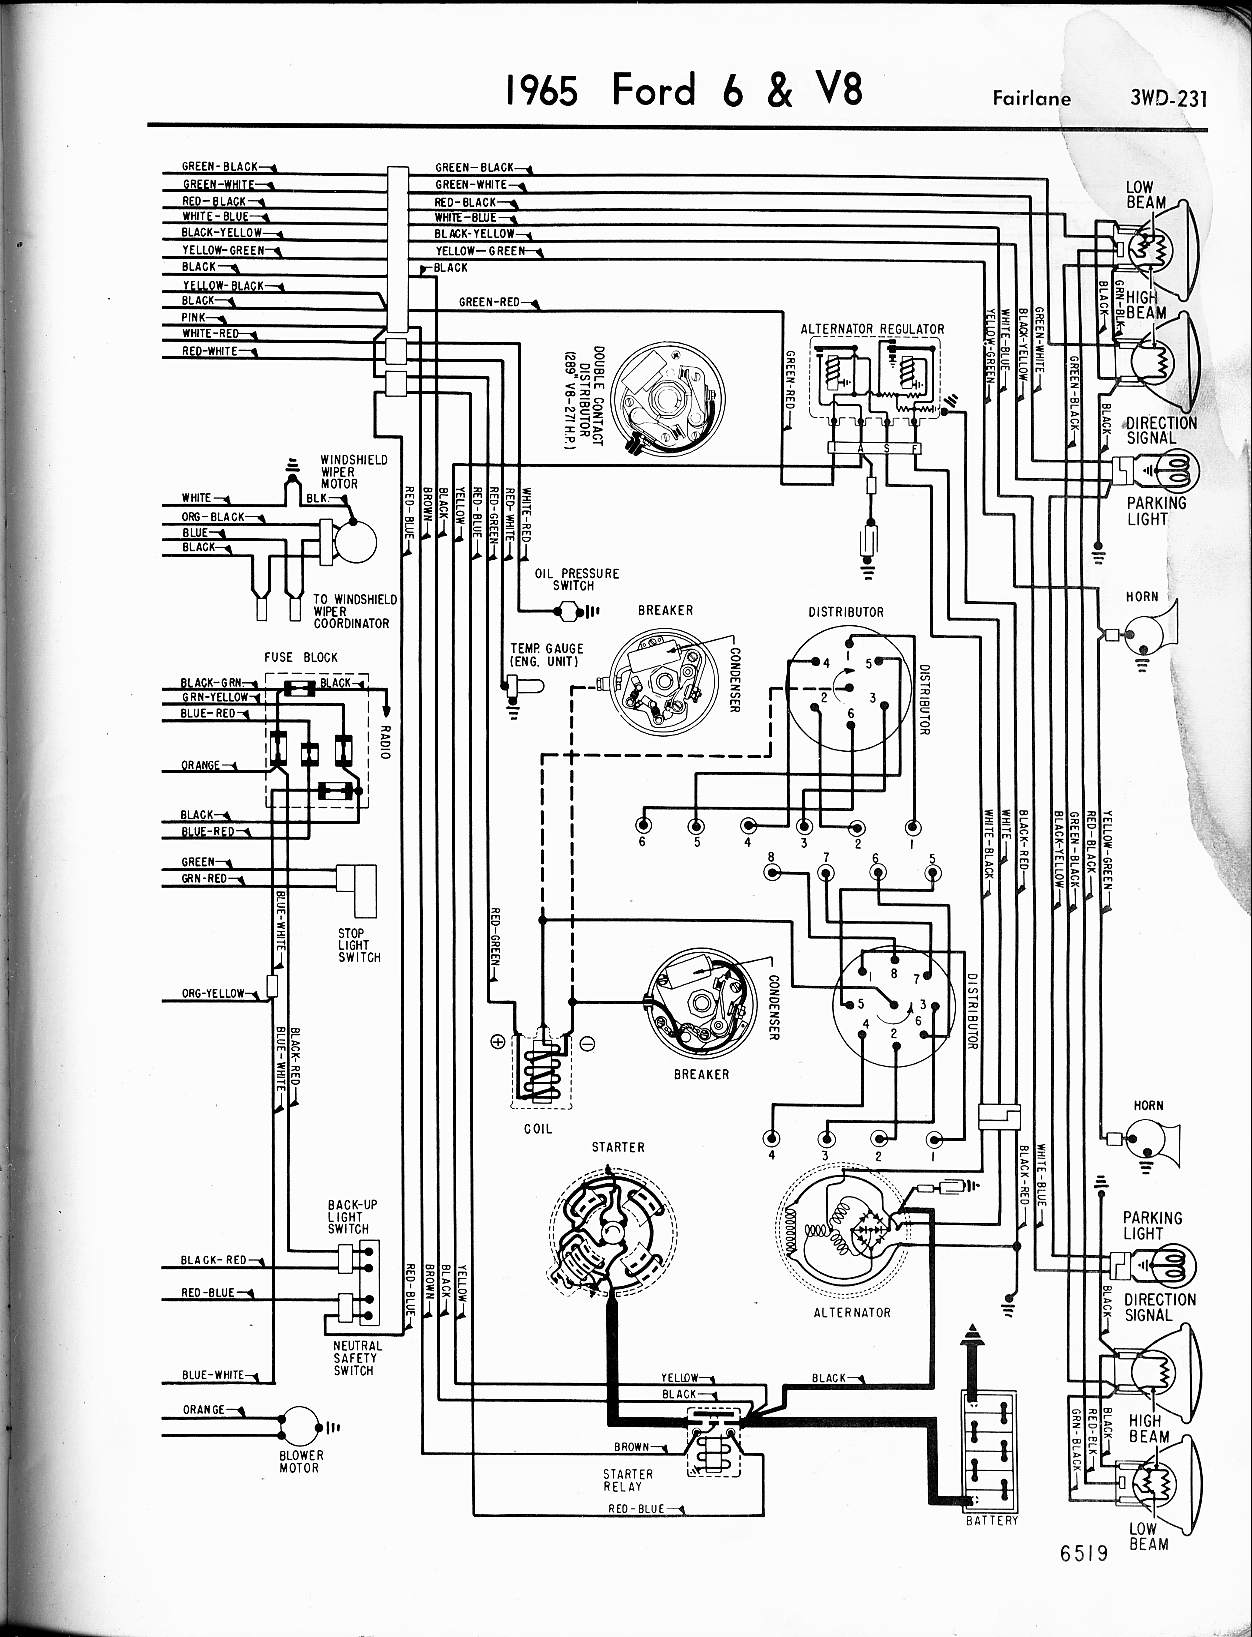 75 Bronco Wiring Diagram moreover 1970 Mercury Cougar Vacuum Hose Diagram as well 1959 Ford Steering Column Wiring Diagram likewise 1970 Camaro Ignition Wiring in addition Honda Atv Identification Location. on 1966 ford mustang wiring diagram